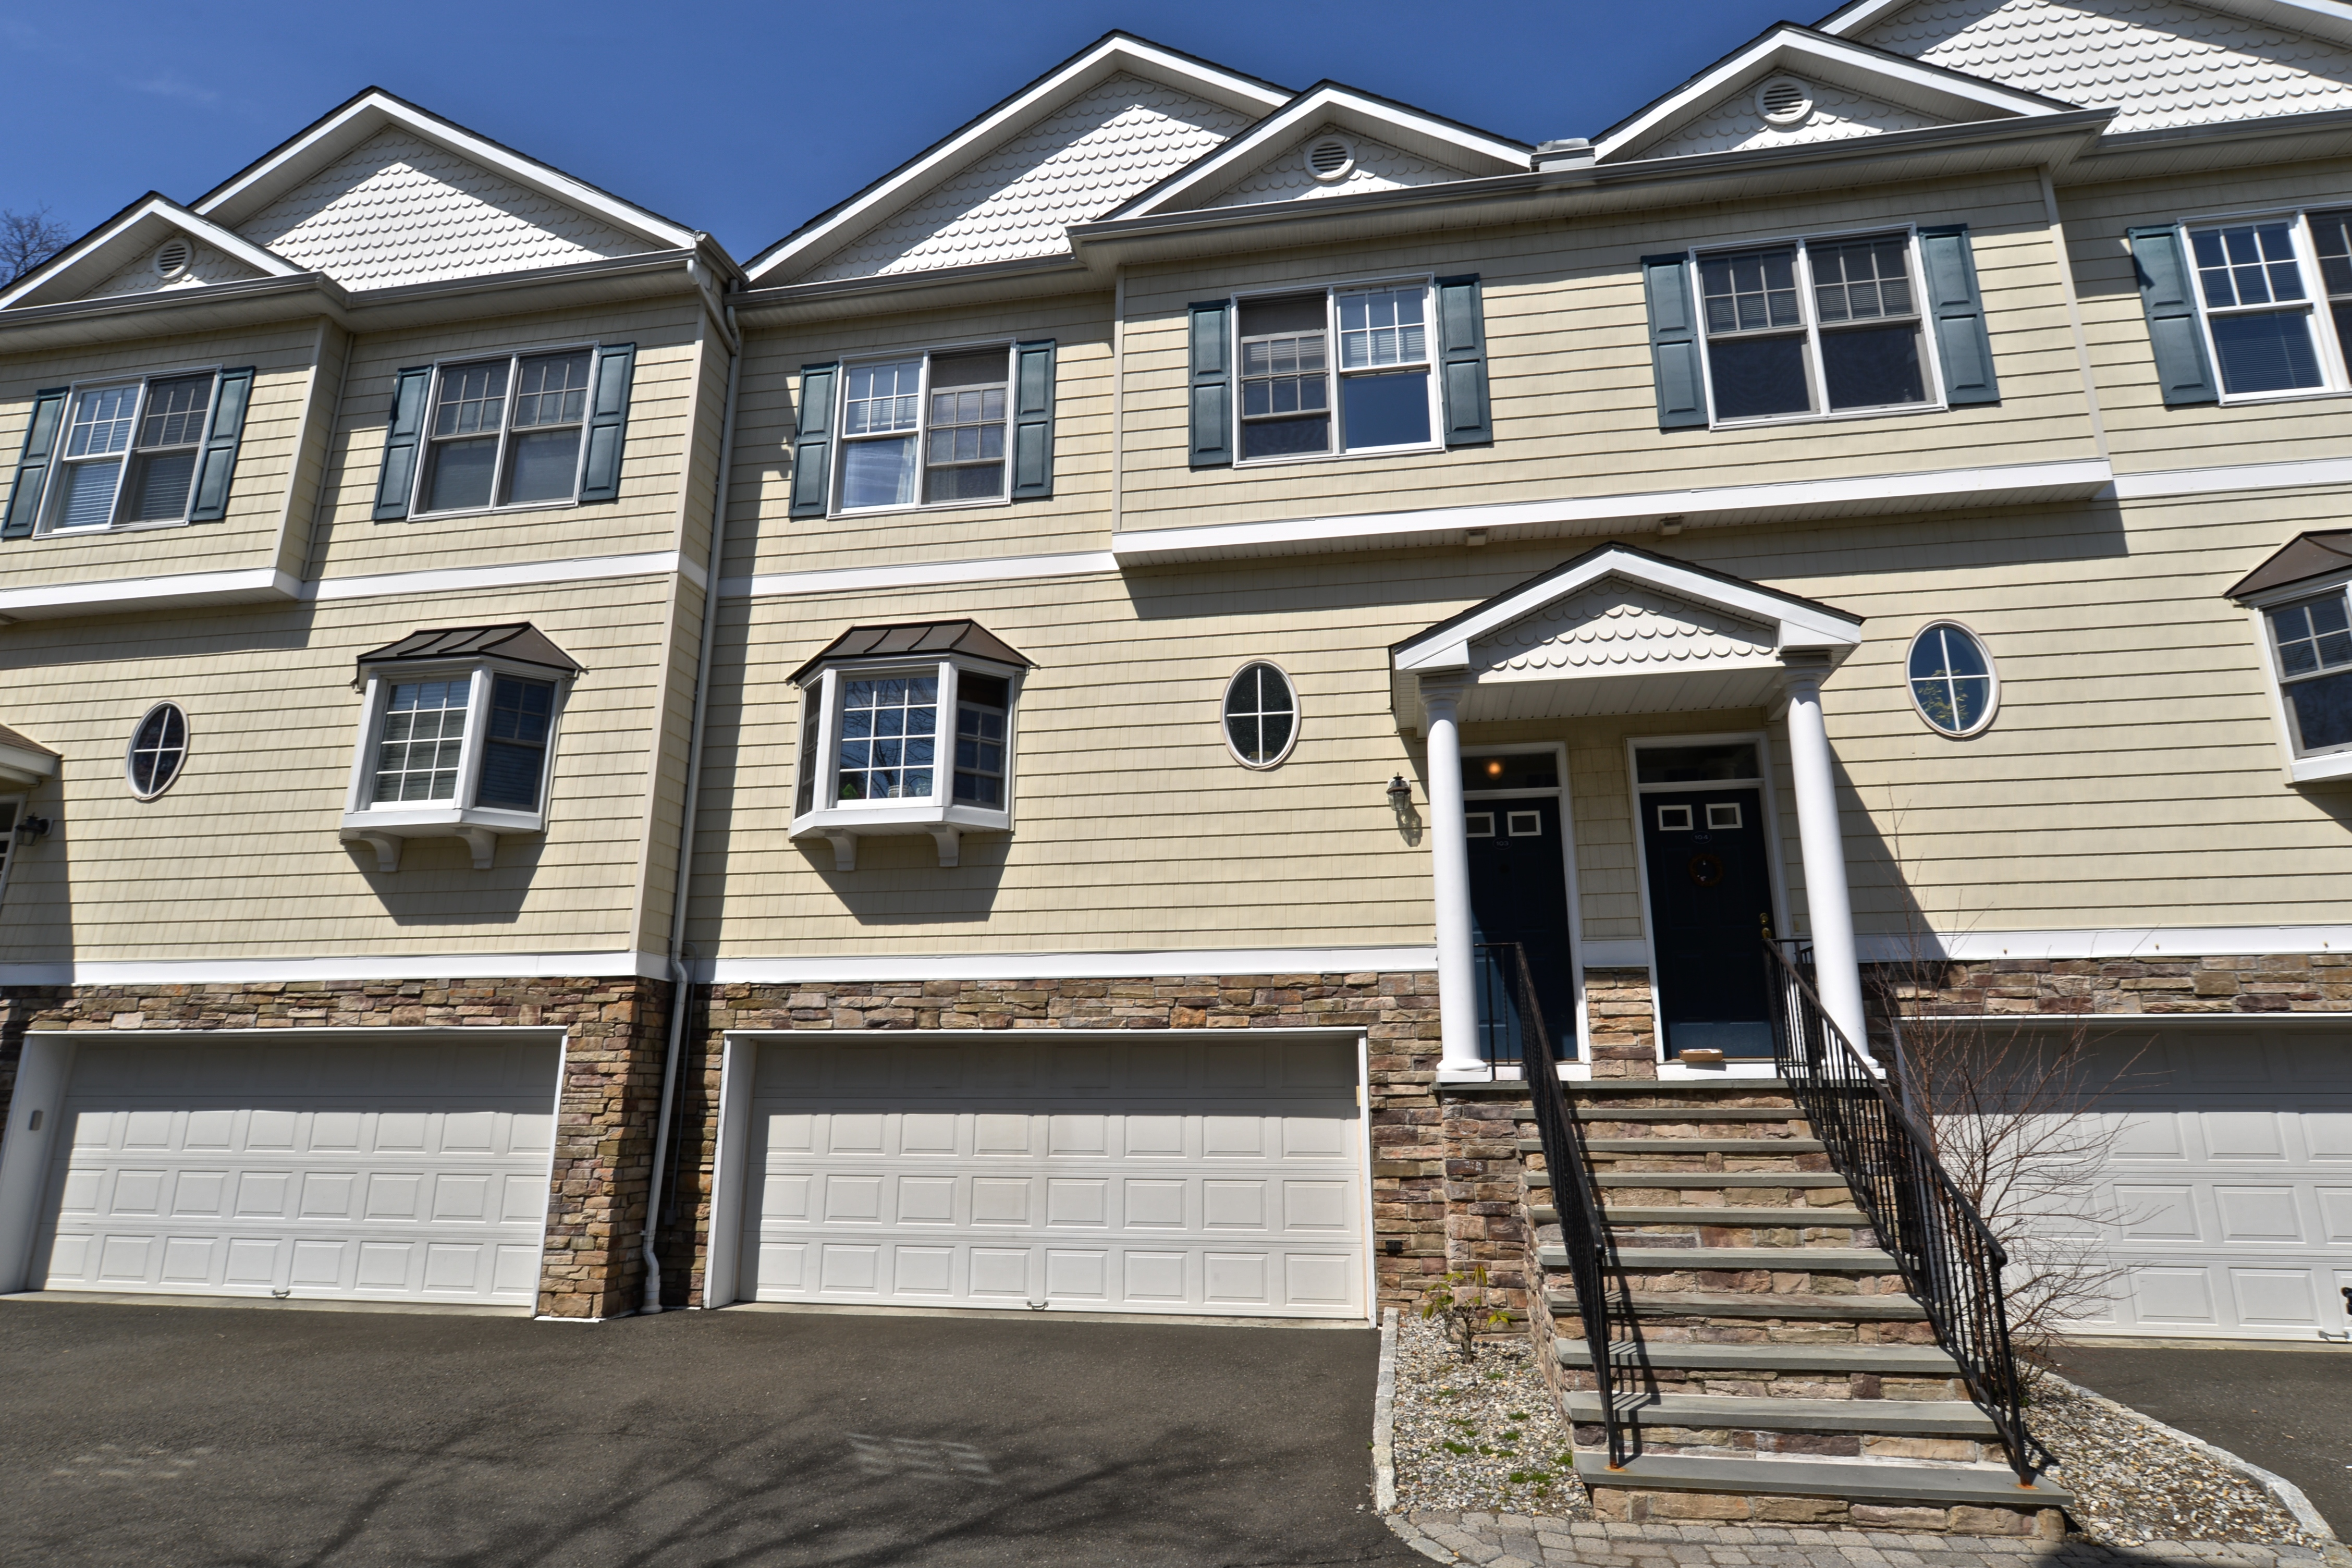 Large Townhome near Candlewood Lake in Danbury,CT